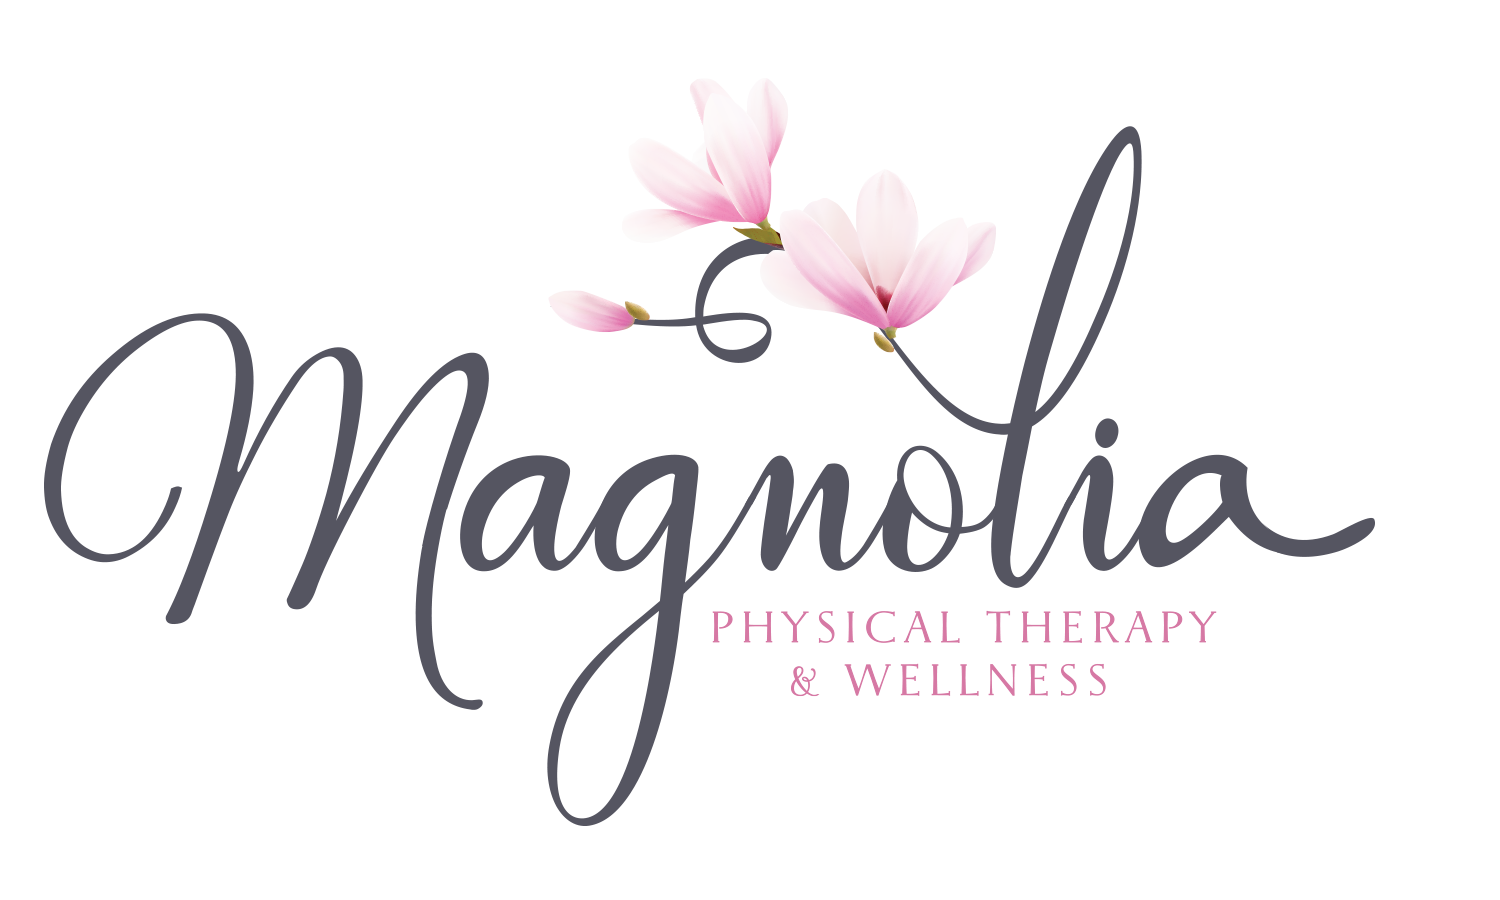 Magnolia Physical Therapy & Wellness